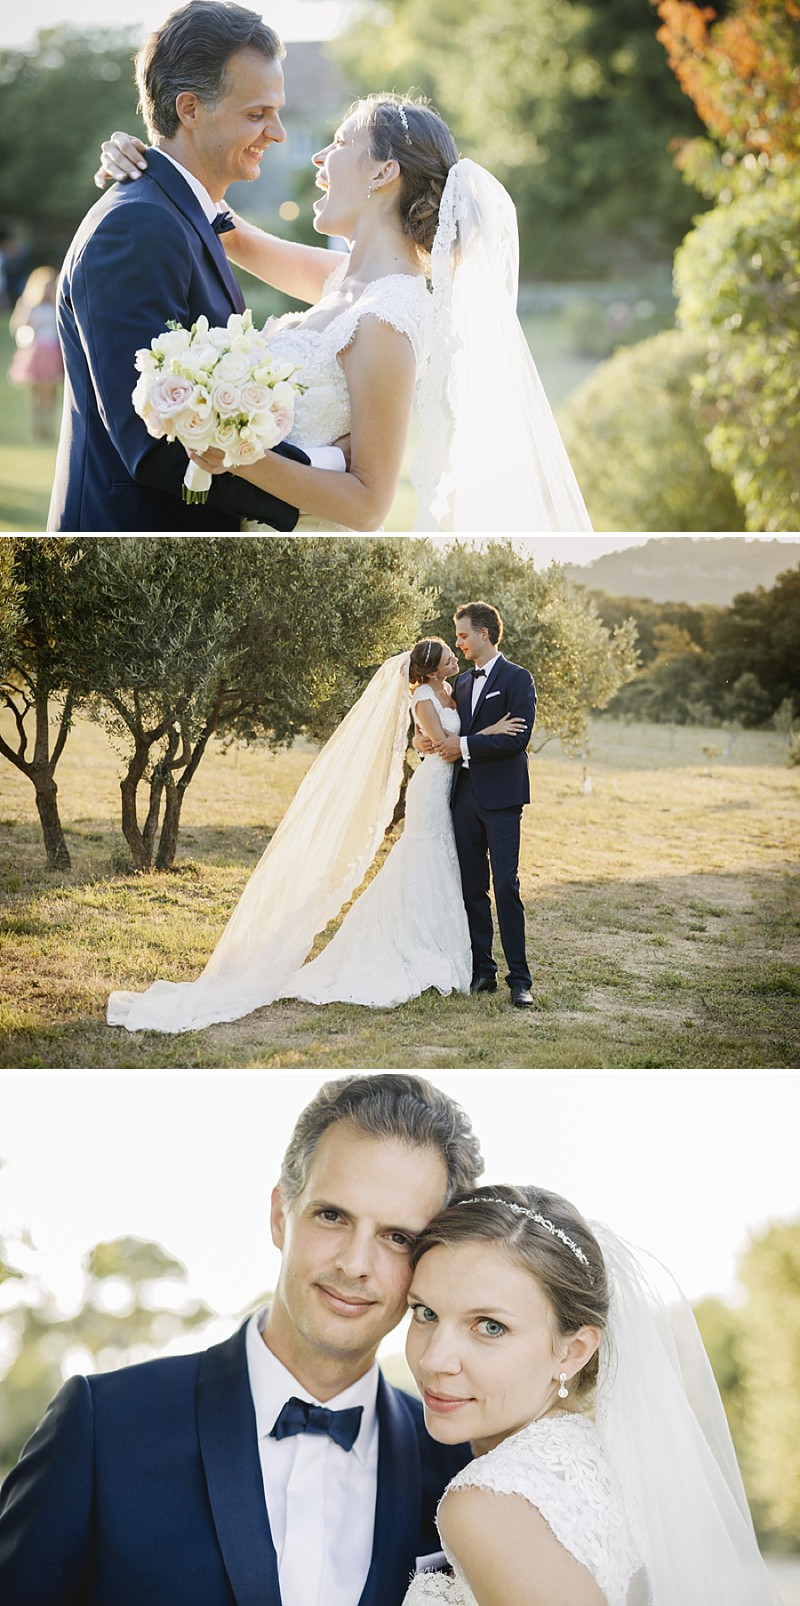 Elegant Wedding At Le Mas De La Rose Provence With Bride In Lace Fishtail Gown By Pronovias And Groom In Navy Armani Tuxedo With Images From Jo Hastings Wedding Photography_0013